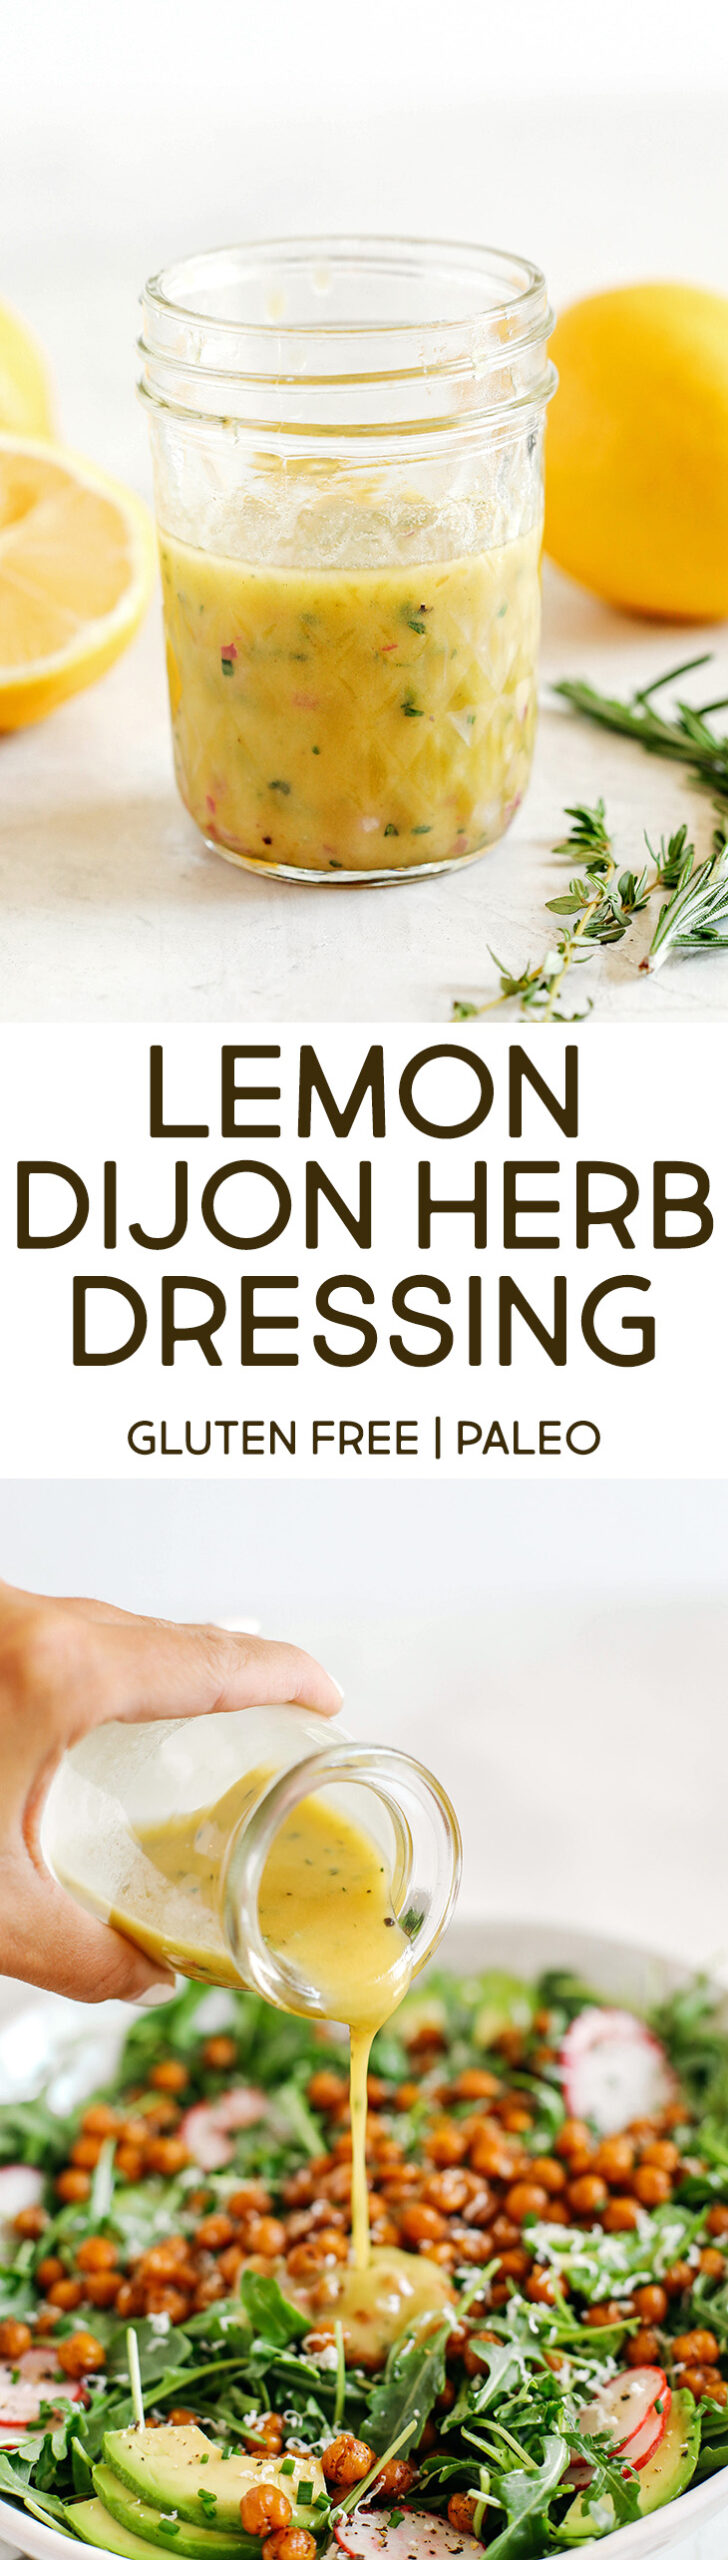 Bright and fresh Lemon Dijon Herb Dressing made in just minutes with a few simple pantry ingredients!  Perfect for salads, veggies, marinades, and more!